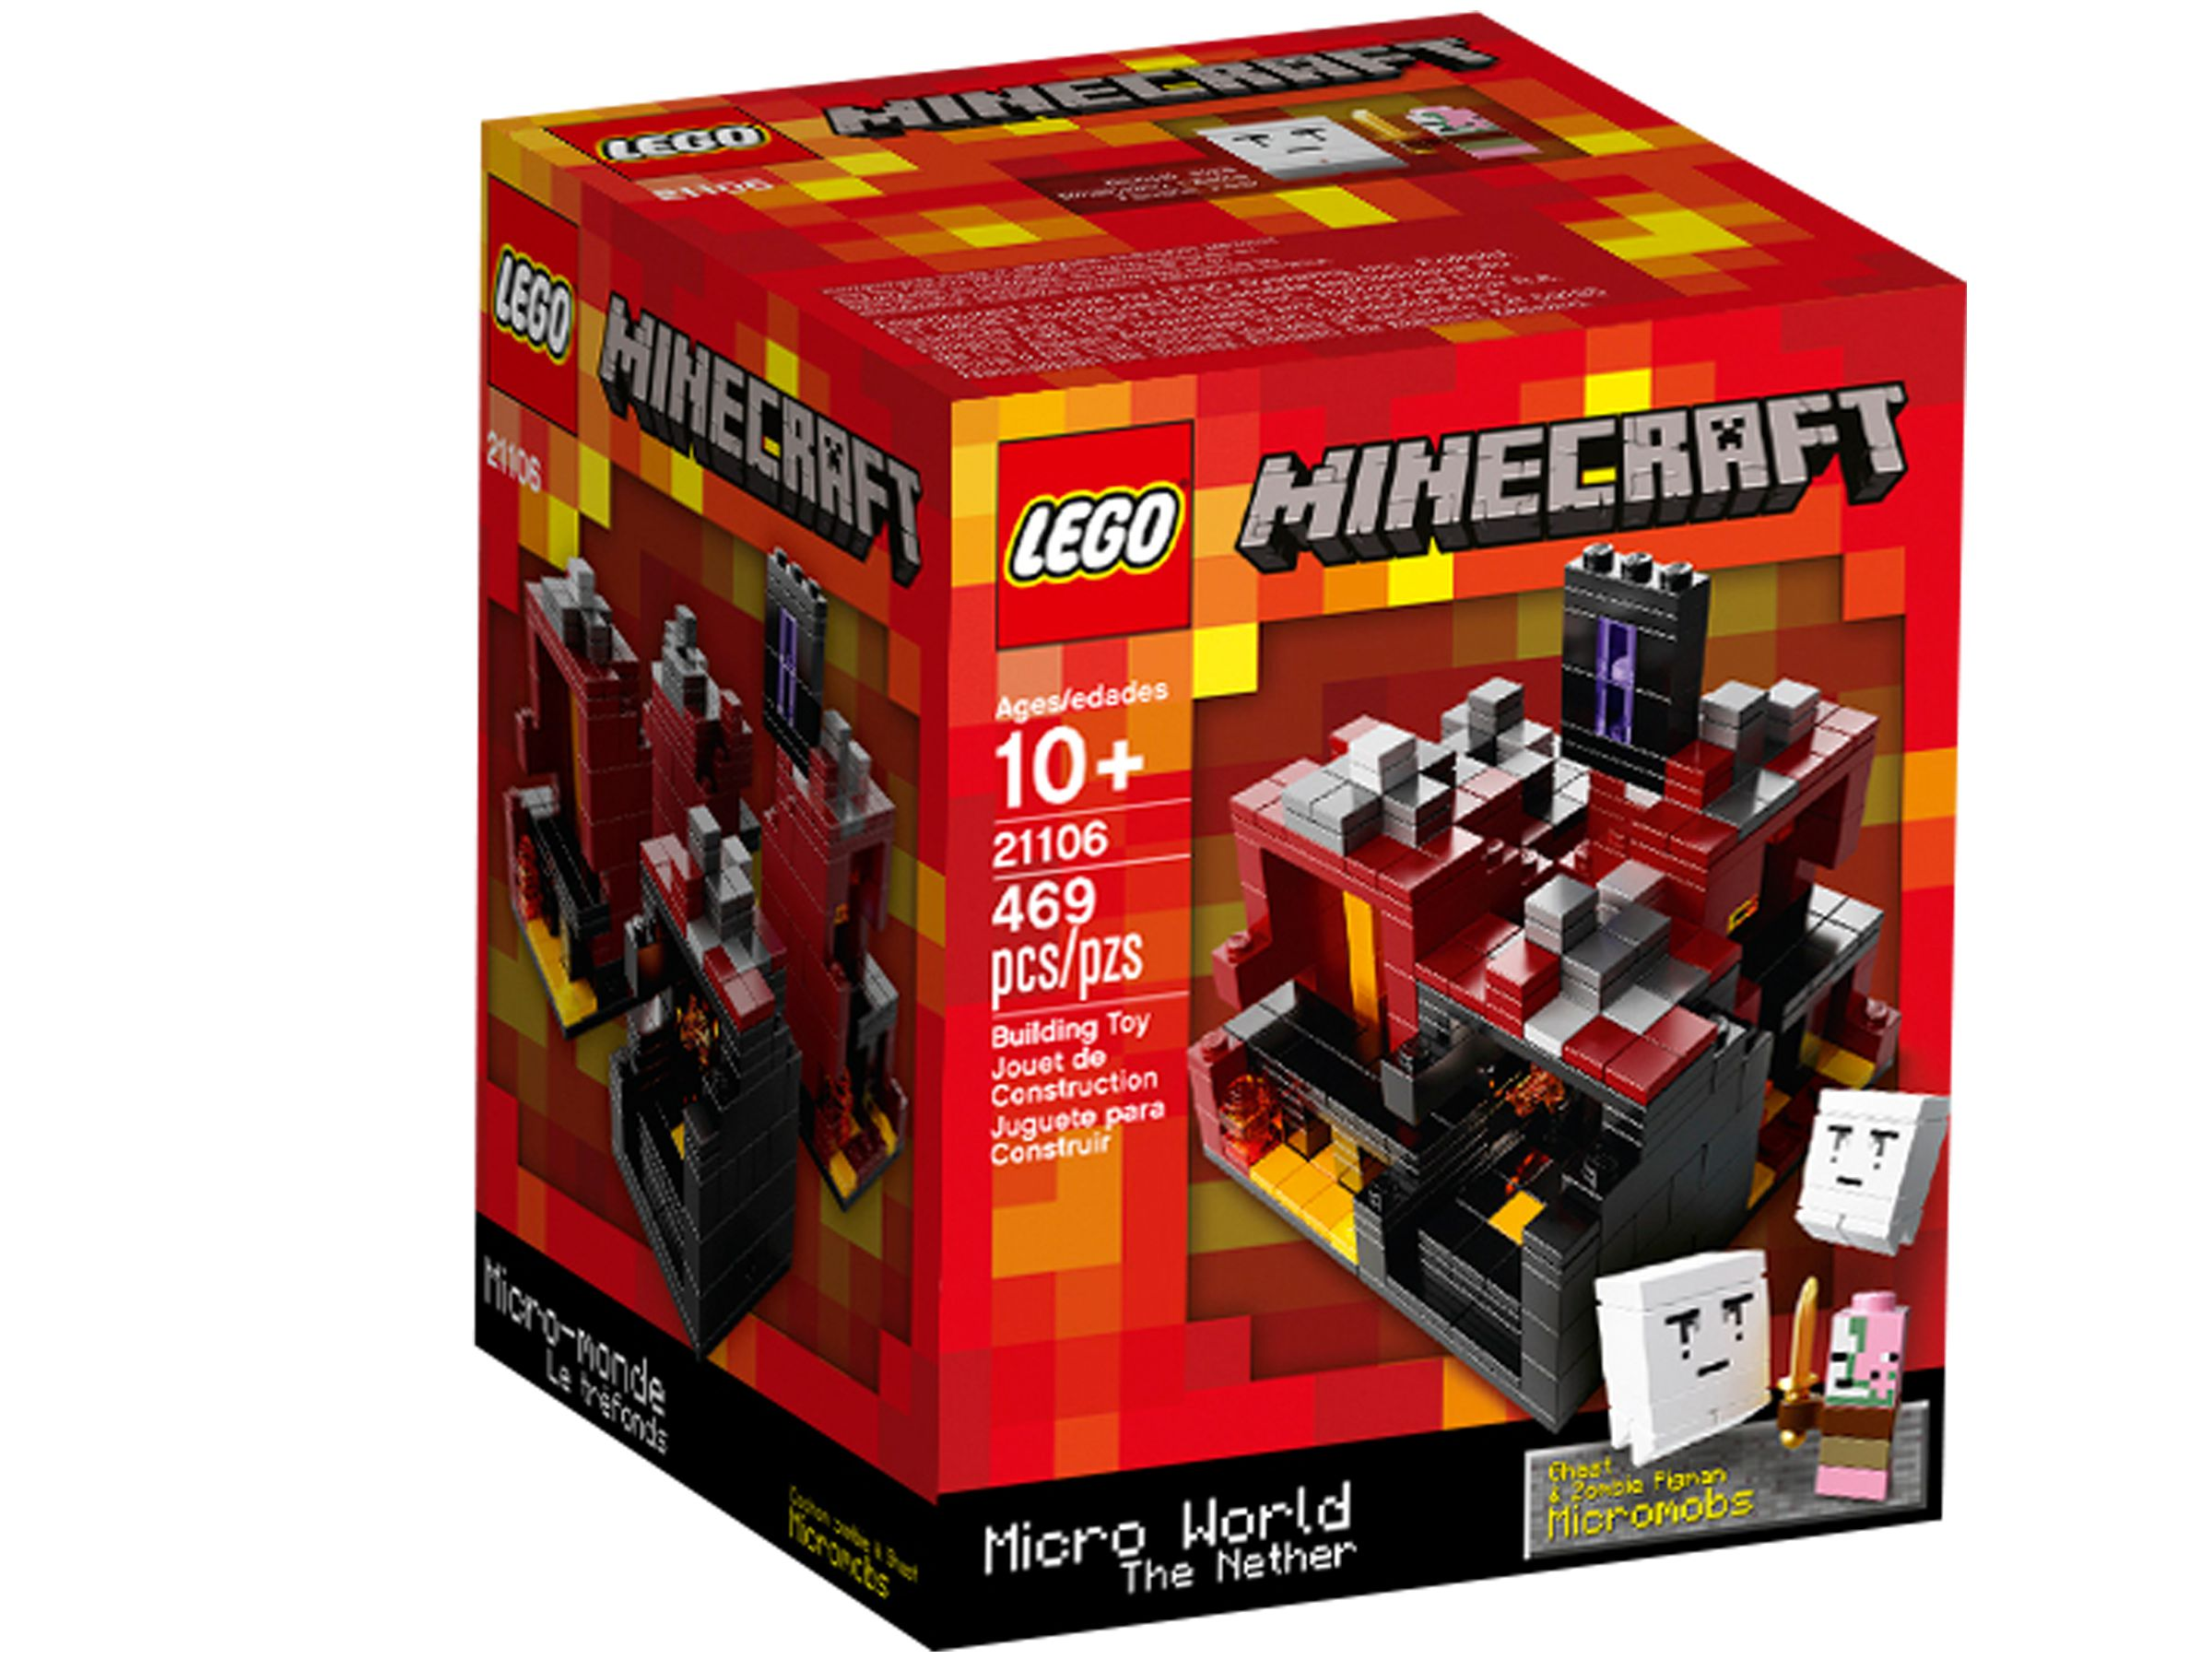 LEGO Minecraft 21106 Micro World – The Nether LEGO_21106_alt1.jpg